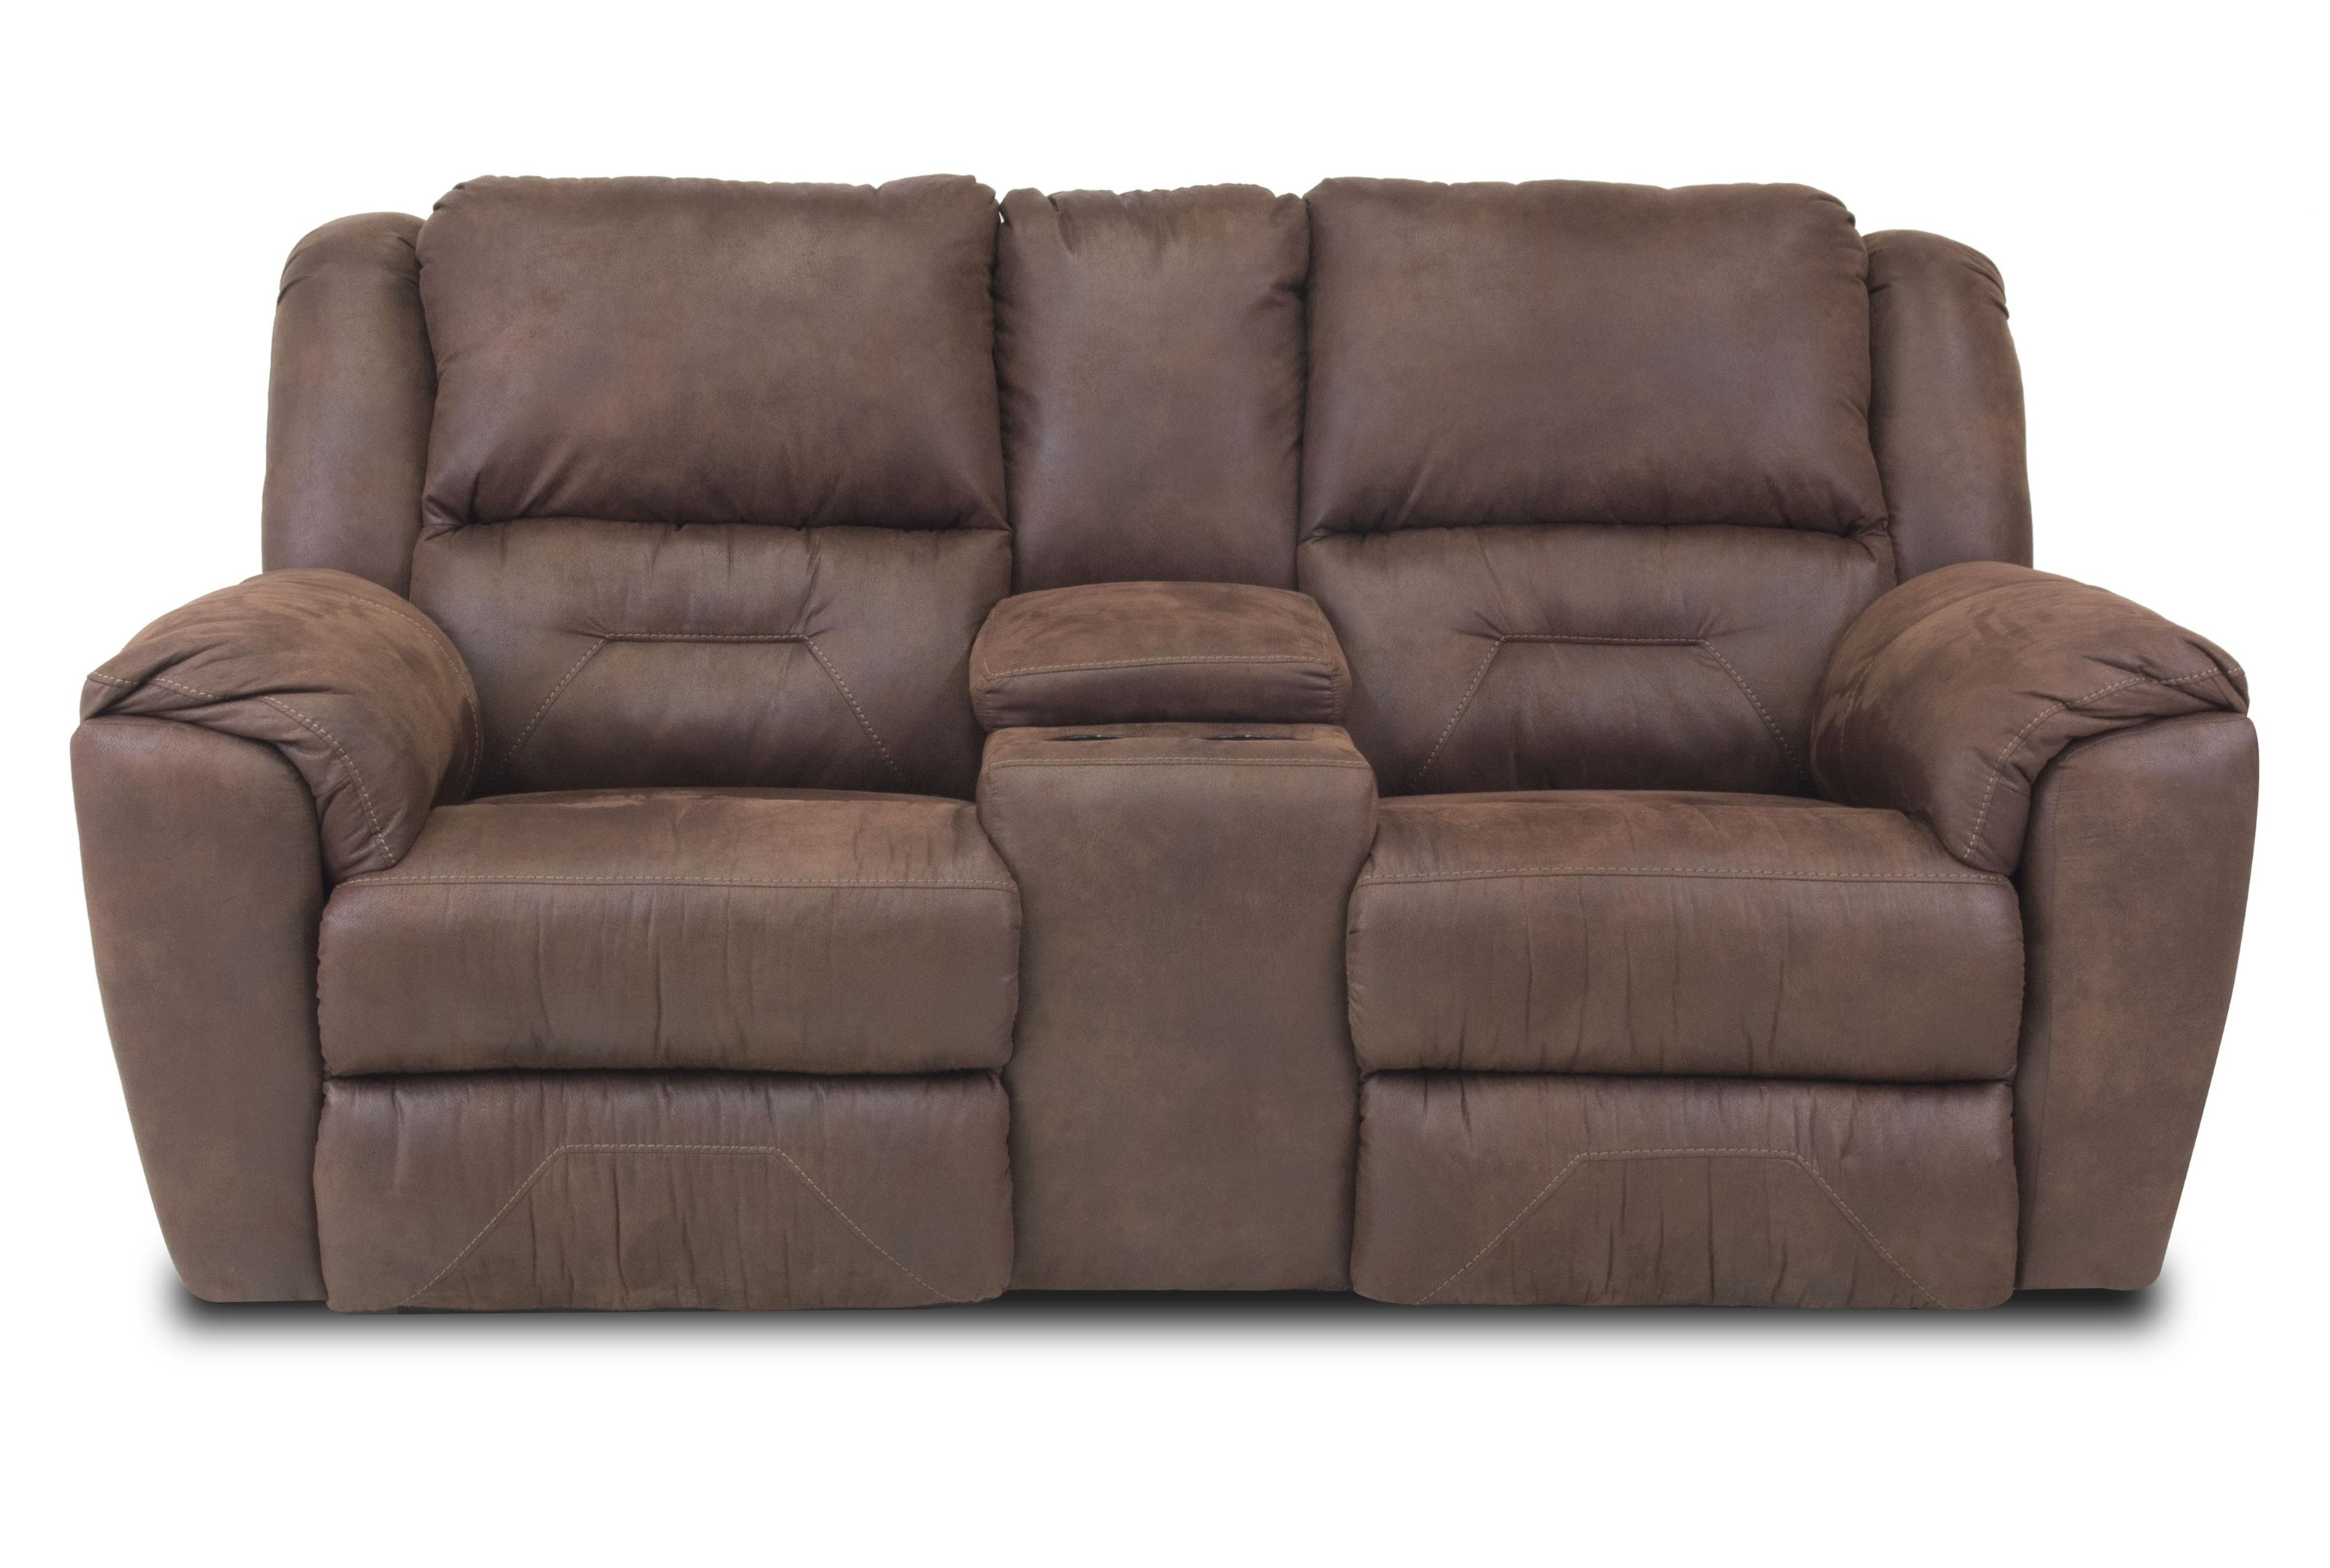 Double Reclining Console Sofa with Cup-Holders